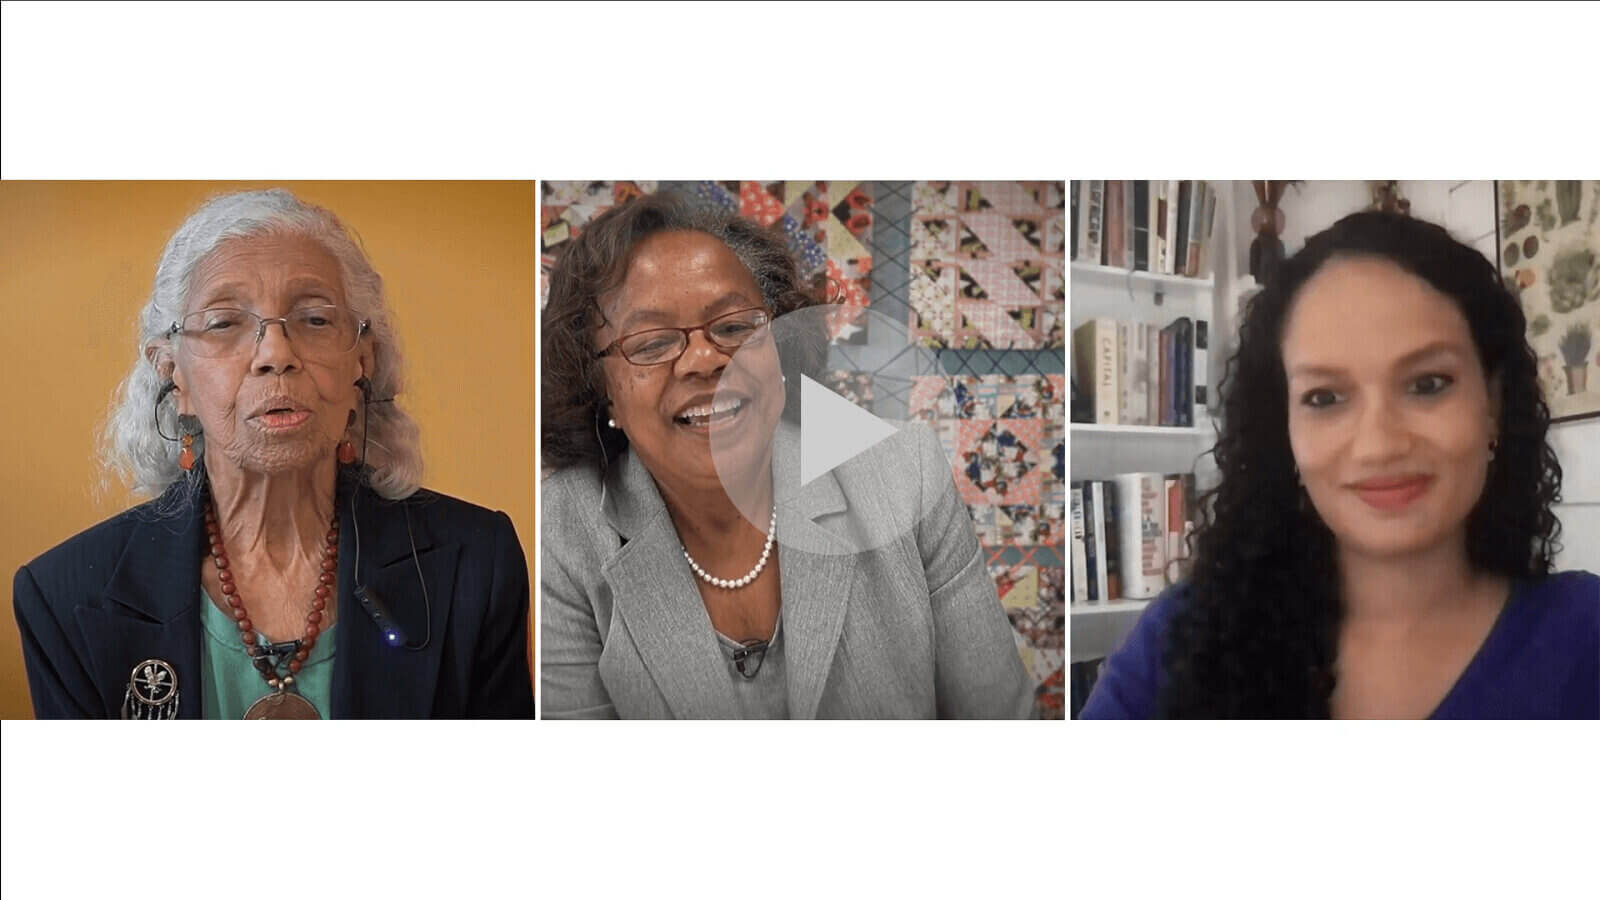 YouTube preview with three images. Left: Dr. Josie Johnson, speaking in a green shirt and black jacket. Middle: Sharon Sayles Belton in a gray patterned shirt and gray jacket. Right: Josie Duffy Rice in a purple shirt.